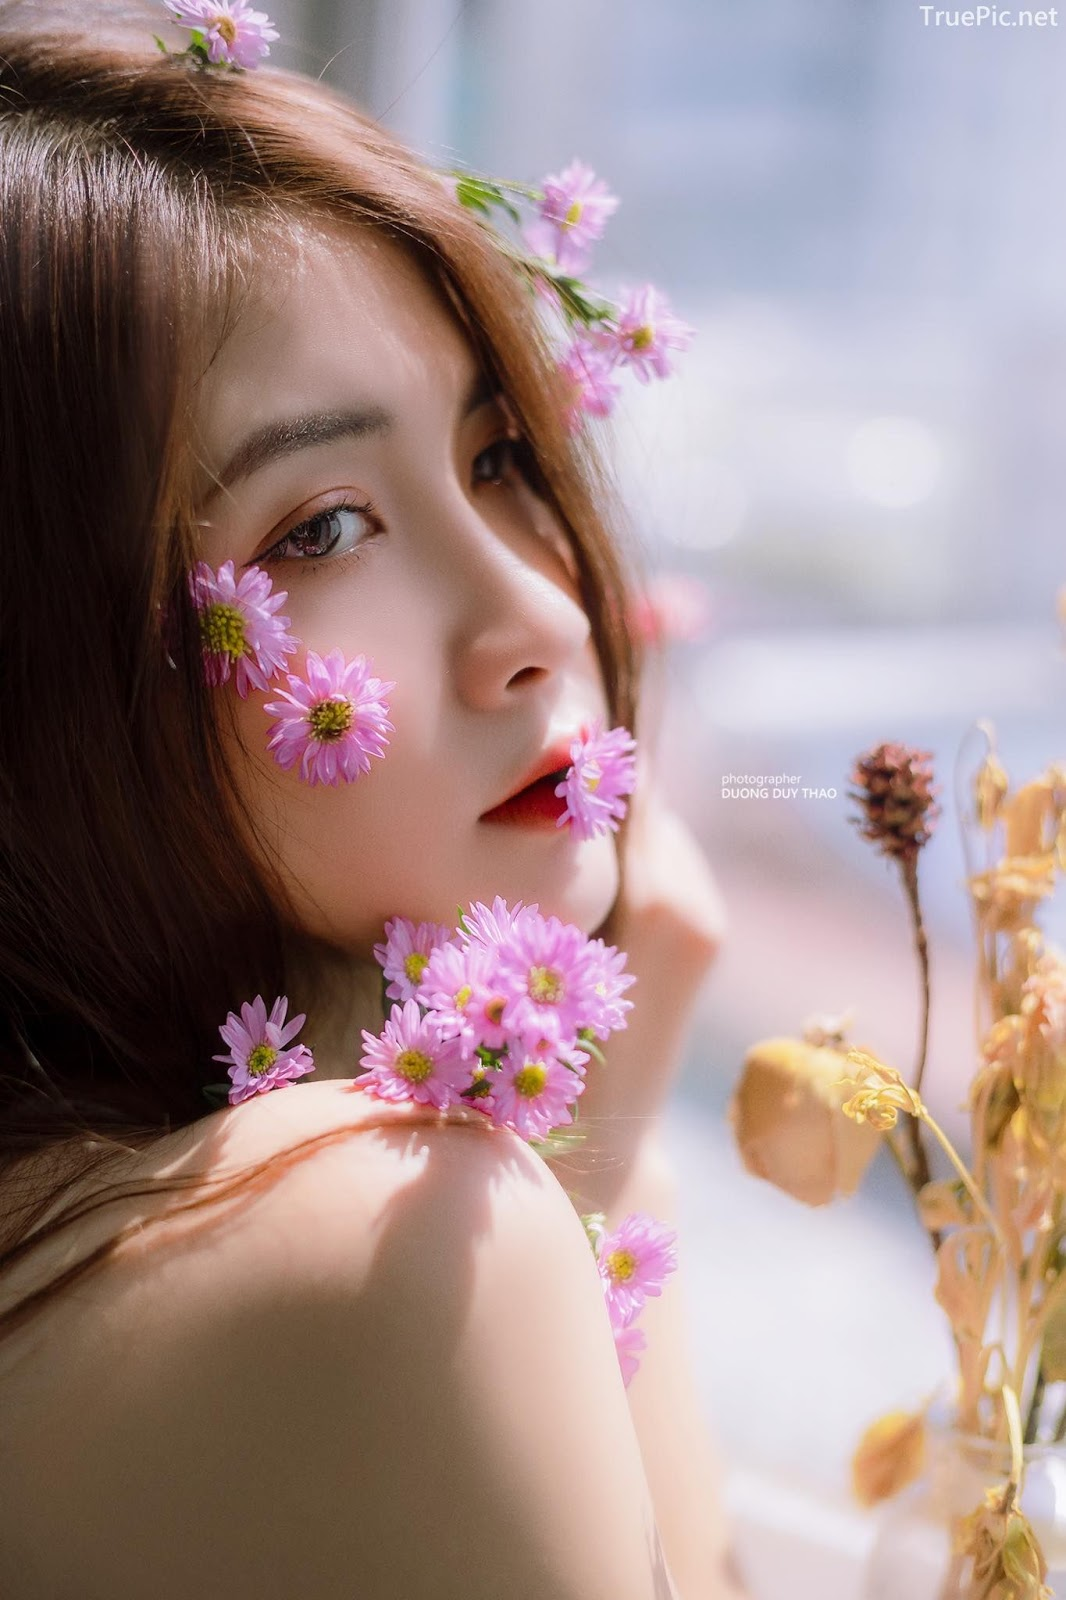 Vietnamese beautiful model Vu Thanh Huong - Fairies purple chrysanthemum - Picture 2